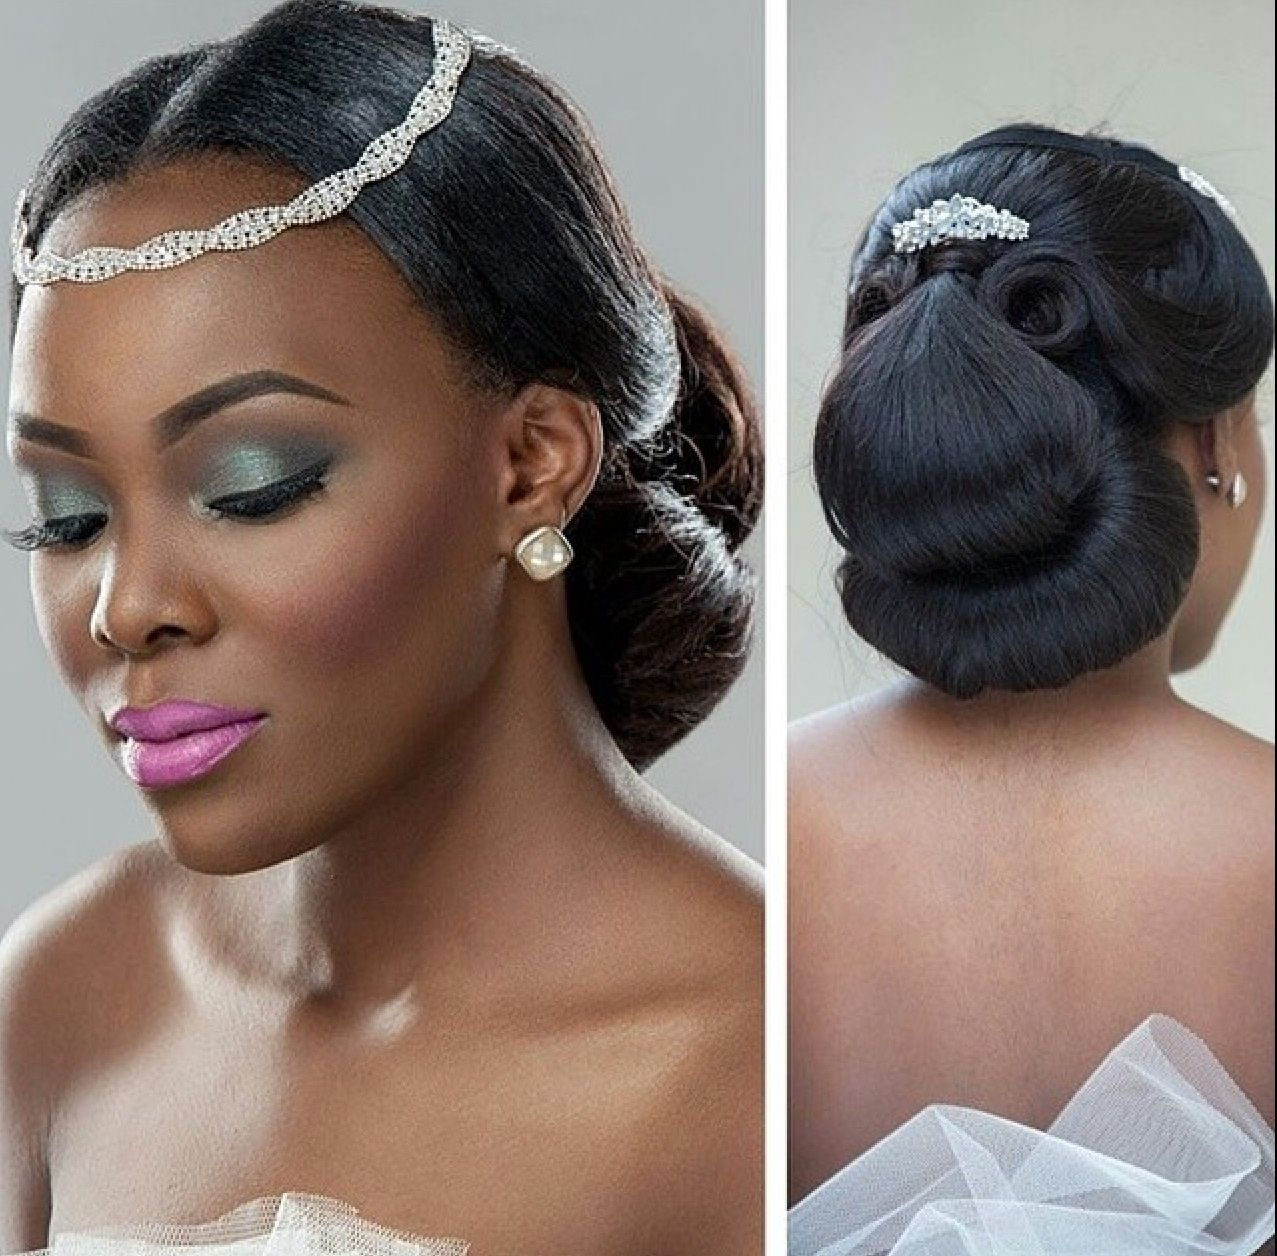 Wedding Hairstyle Photos: Alluring Wedding Makeup For Black Brides